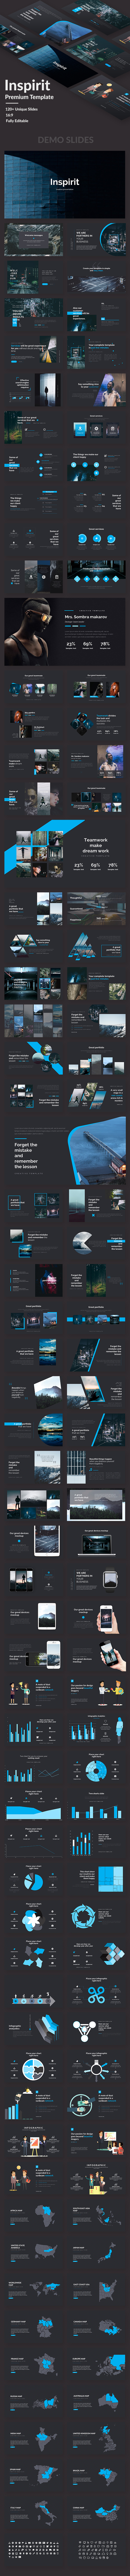 Inspirit Premium Keynote Template - Creative Keynote Templates